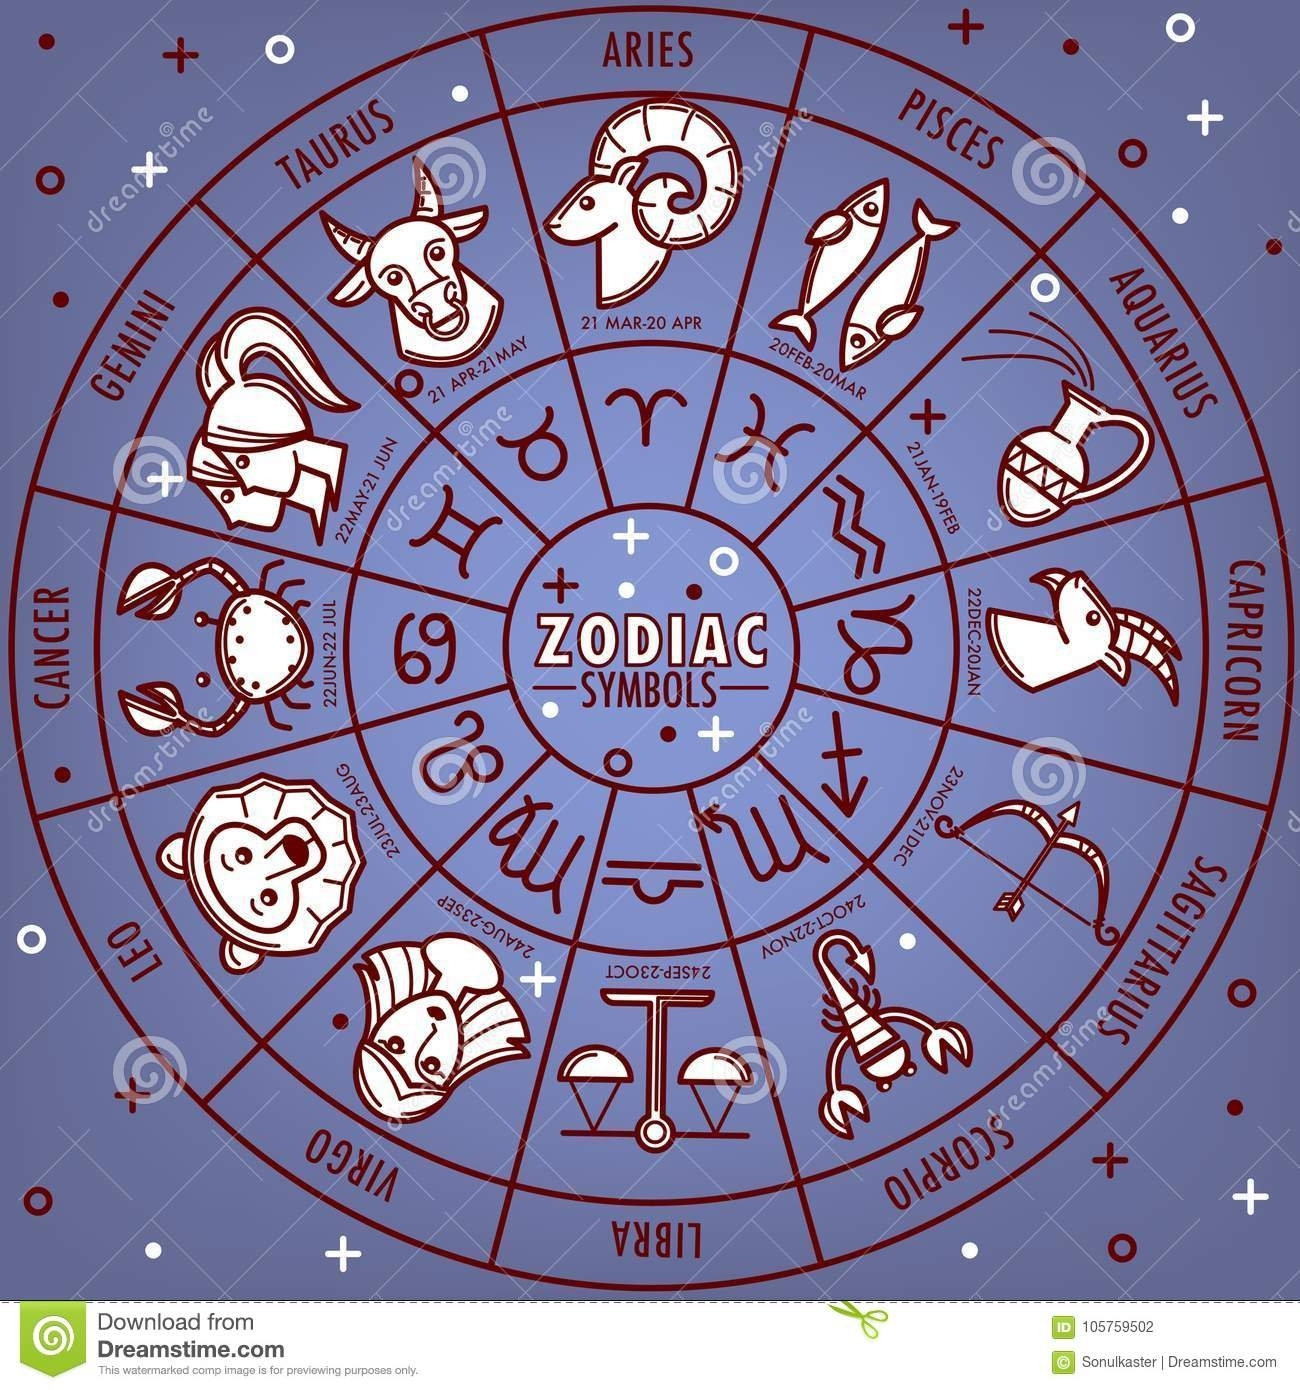 Zodiac Horoscope Signs With Dates Vector Icons On Star Map Zodiac Calendar With Dates